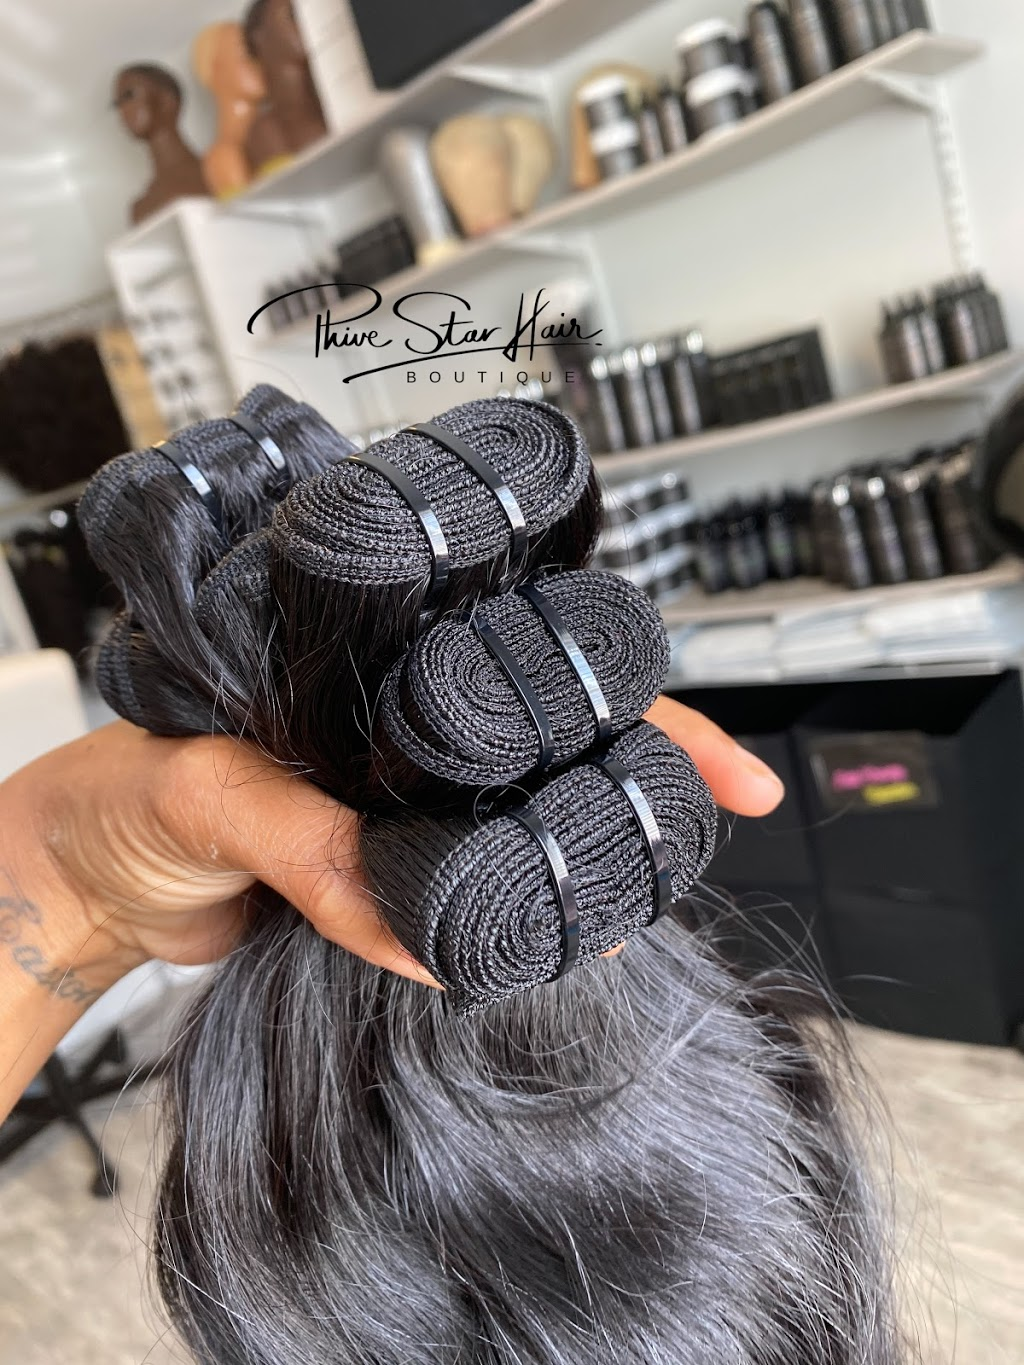 Phive Star Hair Boutique - hair care  | Photo 4 of 10 | Address: 320 N Magnolia Ave A5, Orlando, FL 32801, USA | Phone: (954) 243-7478